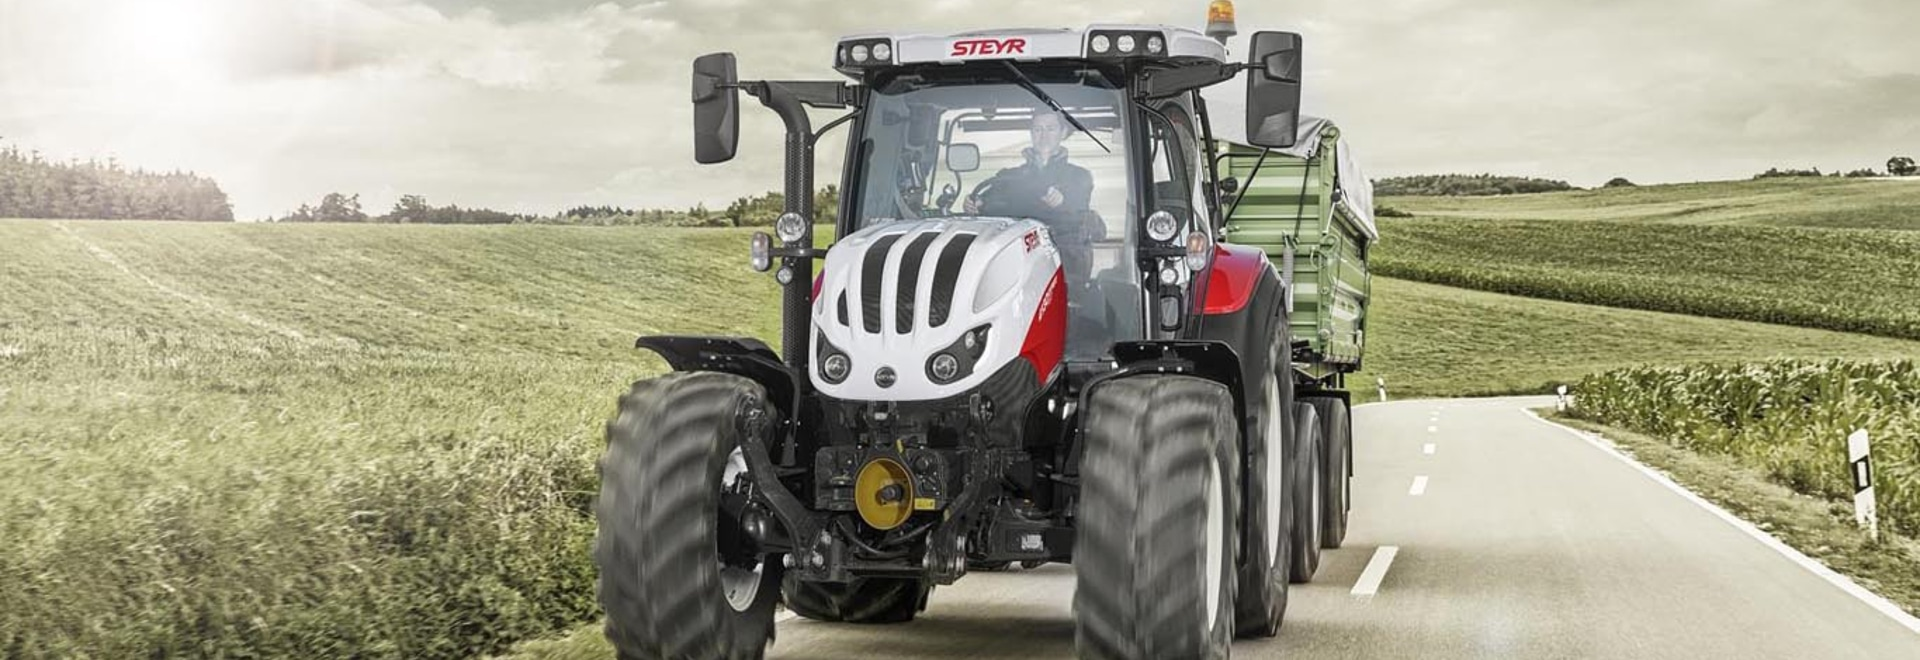 New compact size premium tractor on the starting grid from Steyr